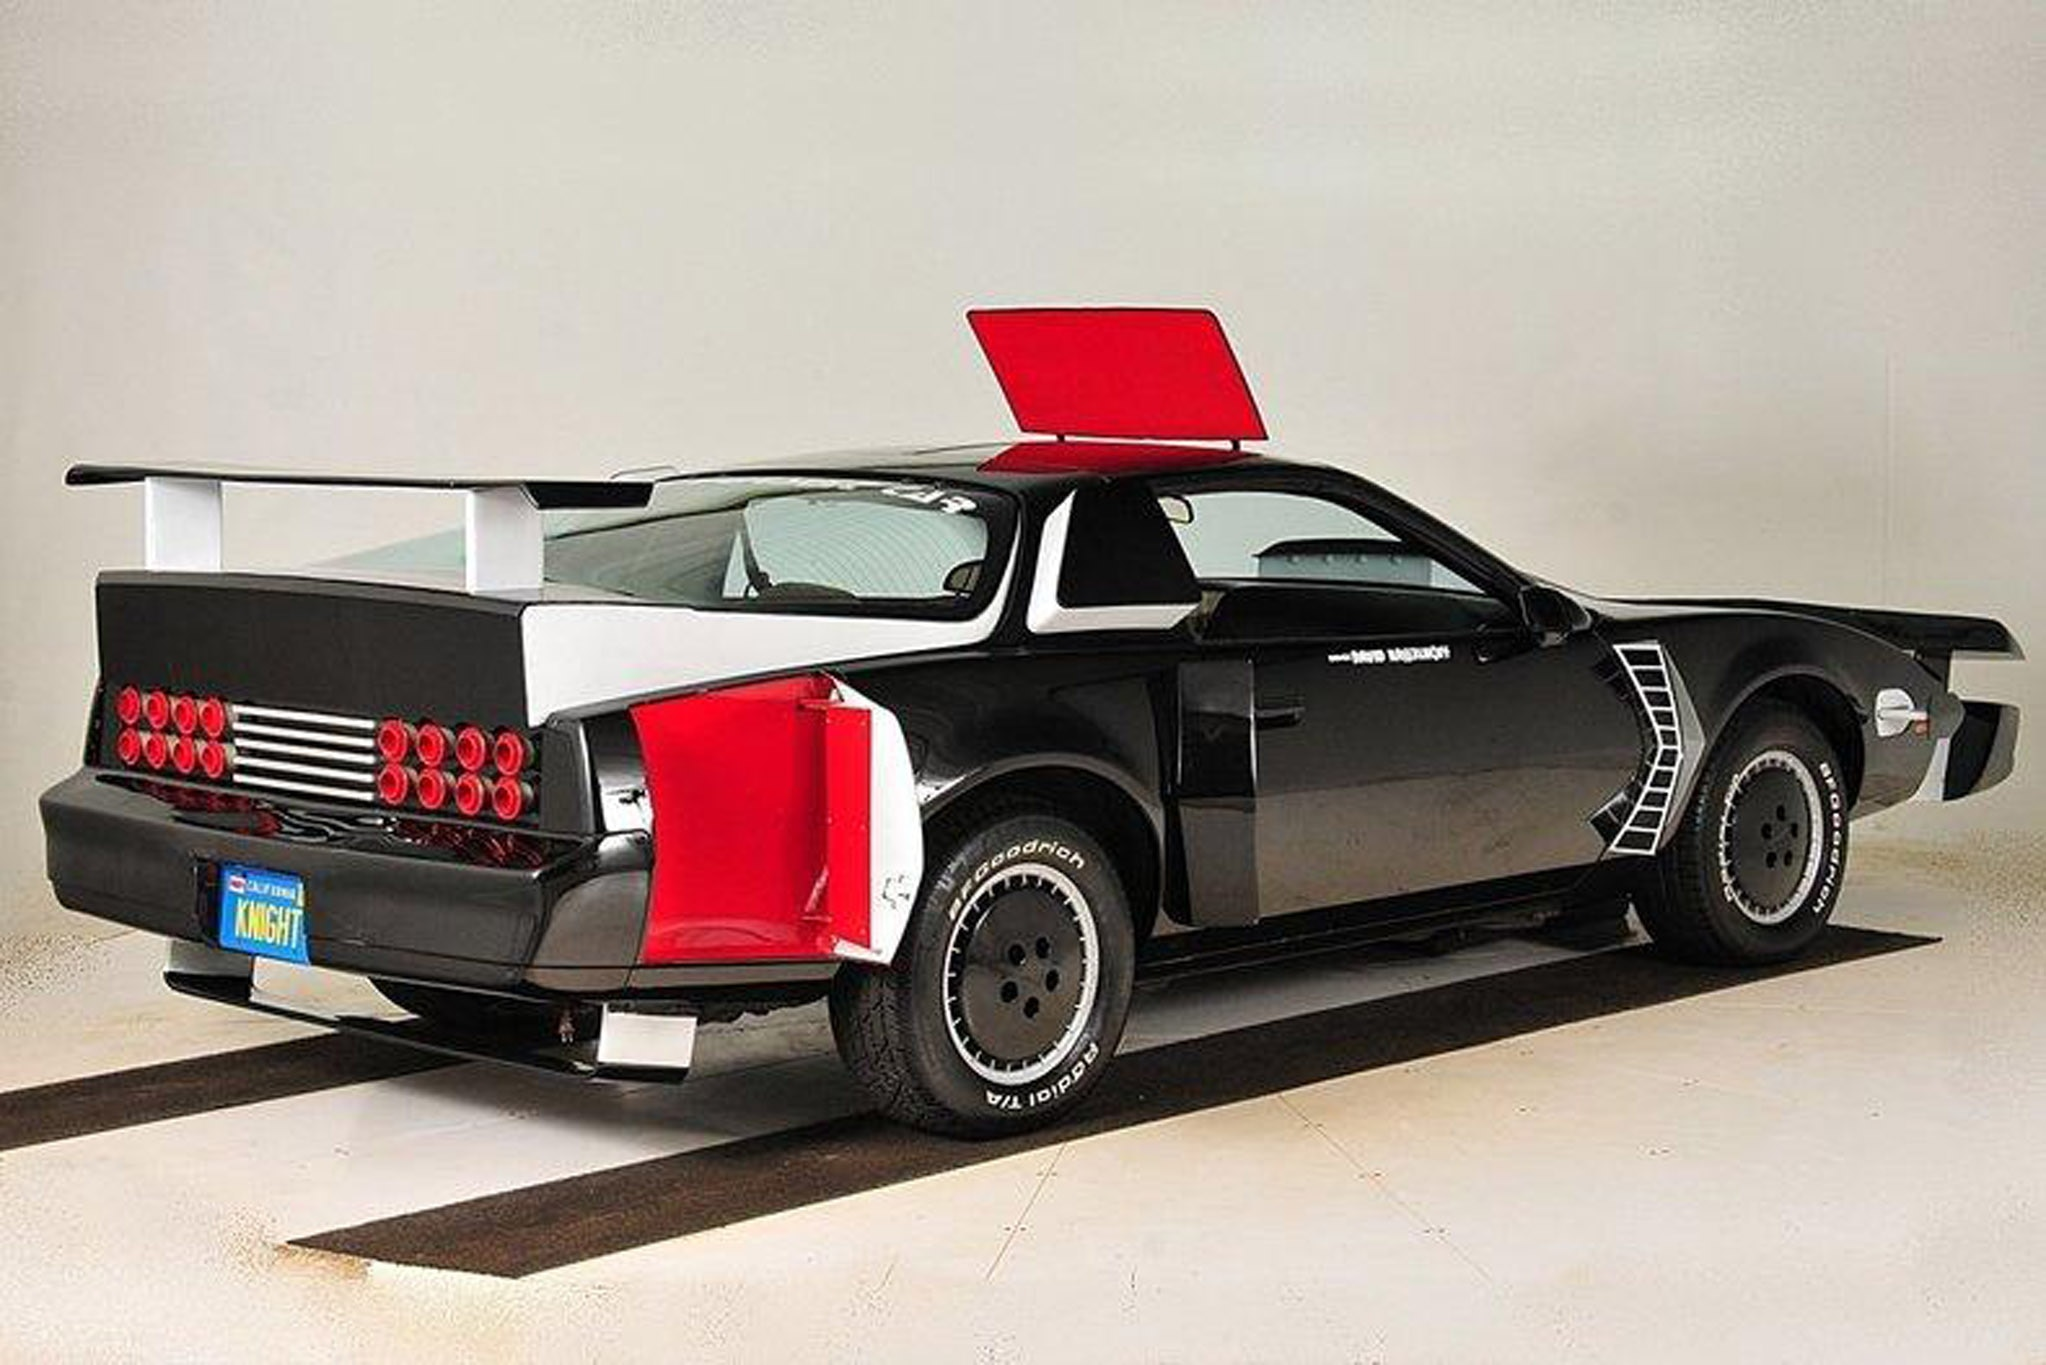 Knight Rider Super Pursuit Mode KITT Goes to Auction